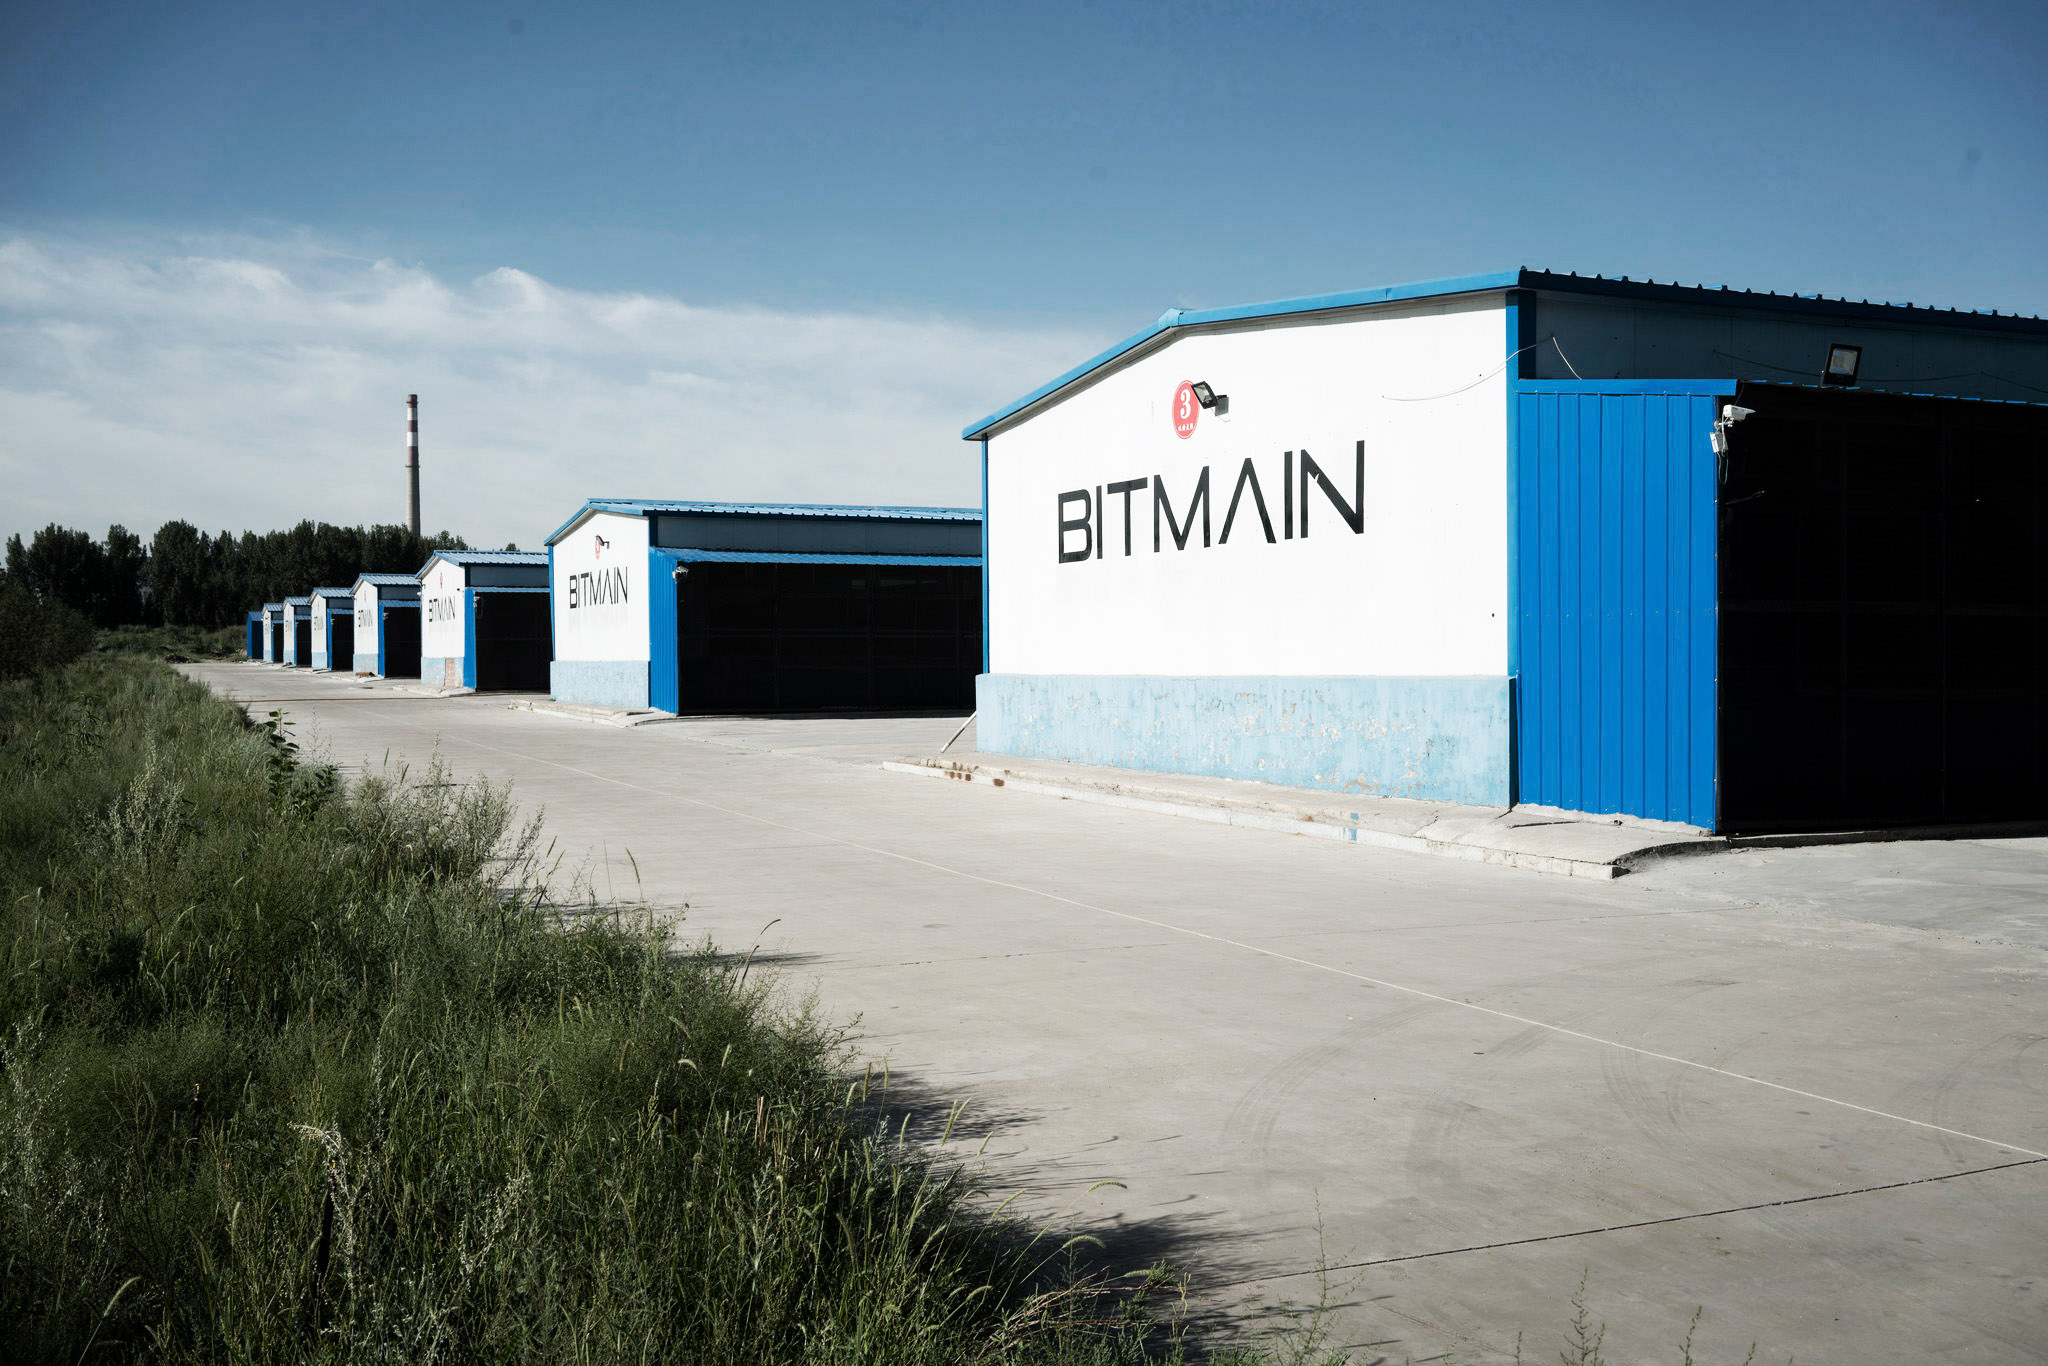 China's Bitmain